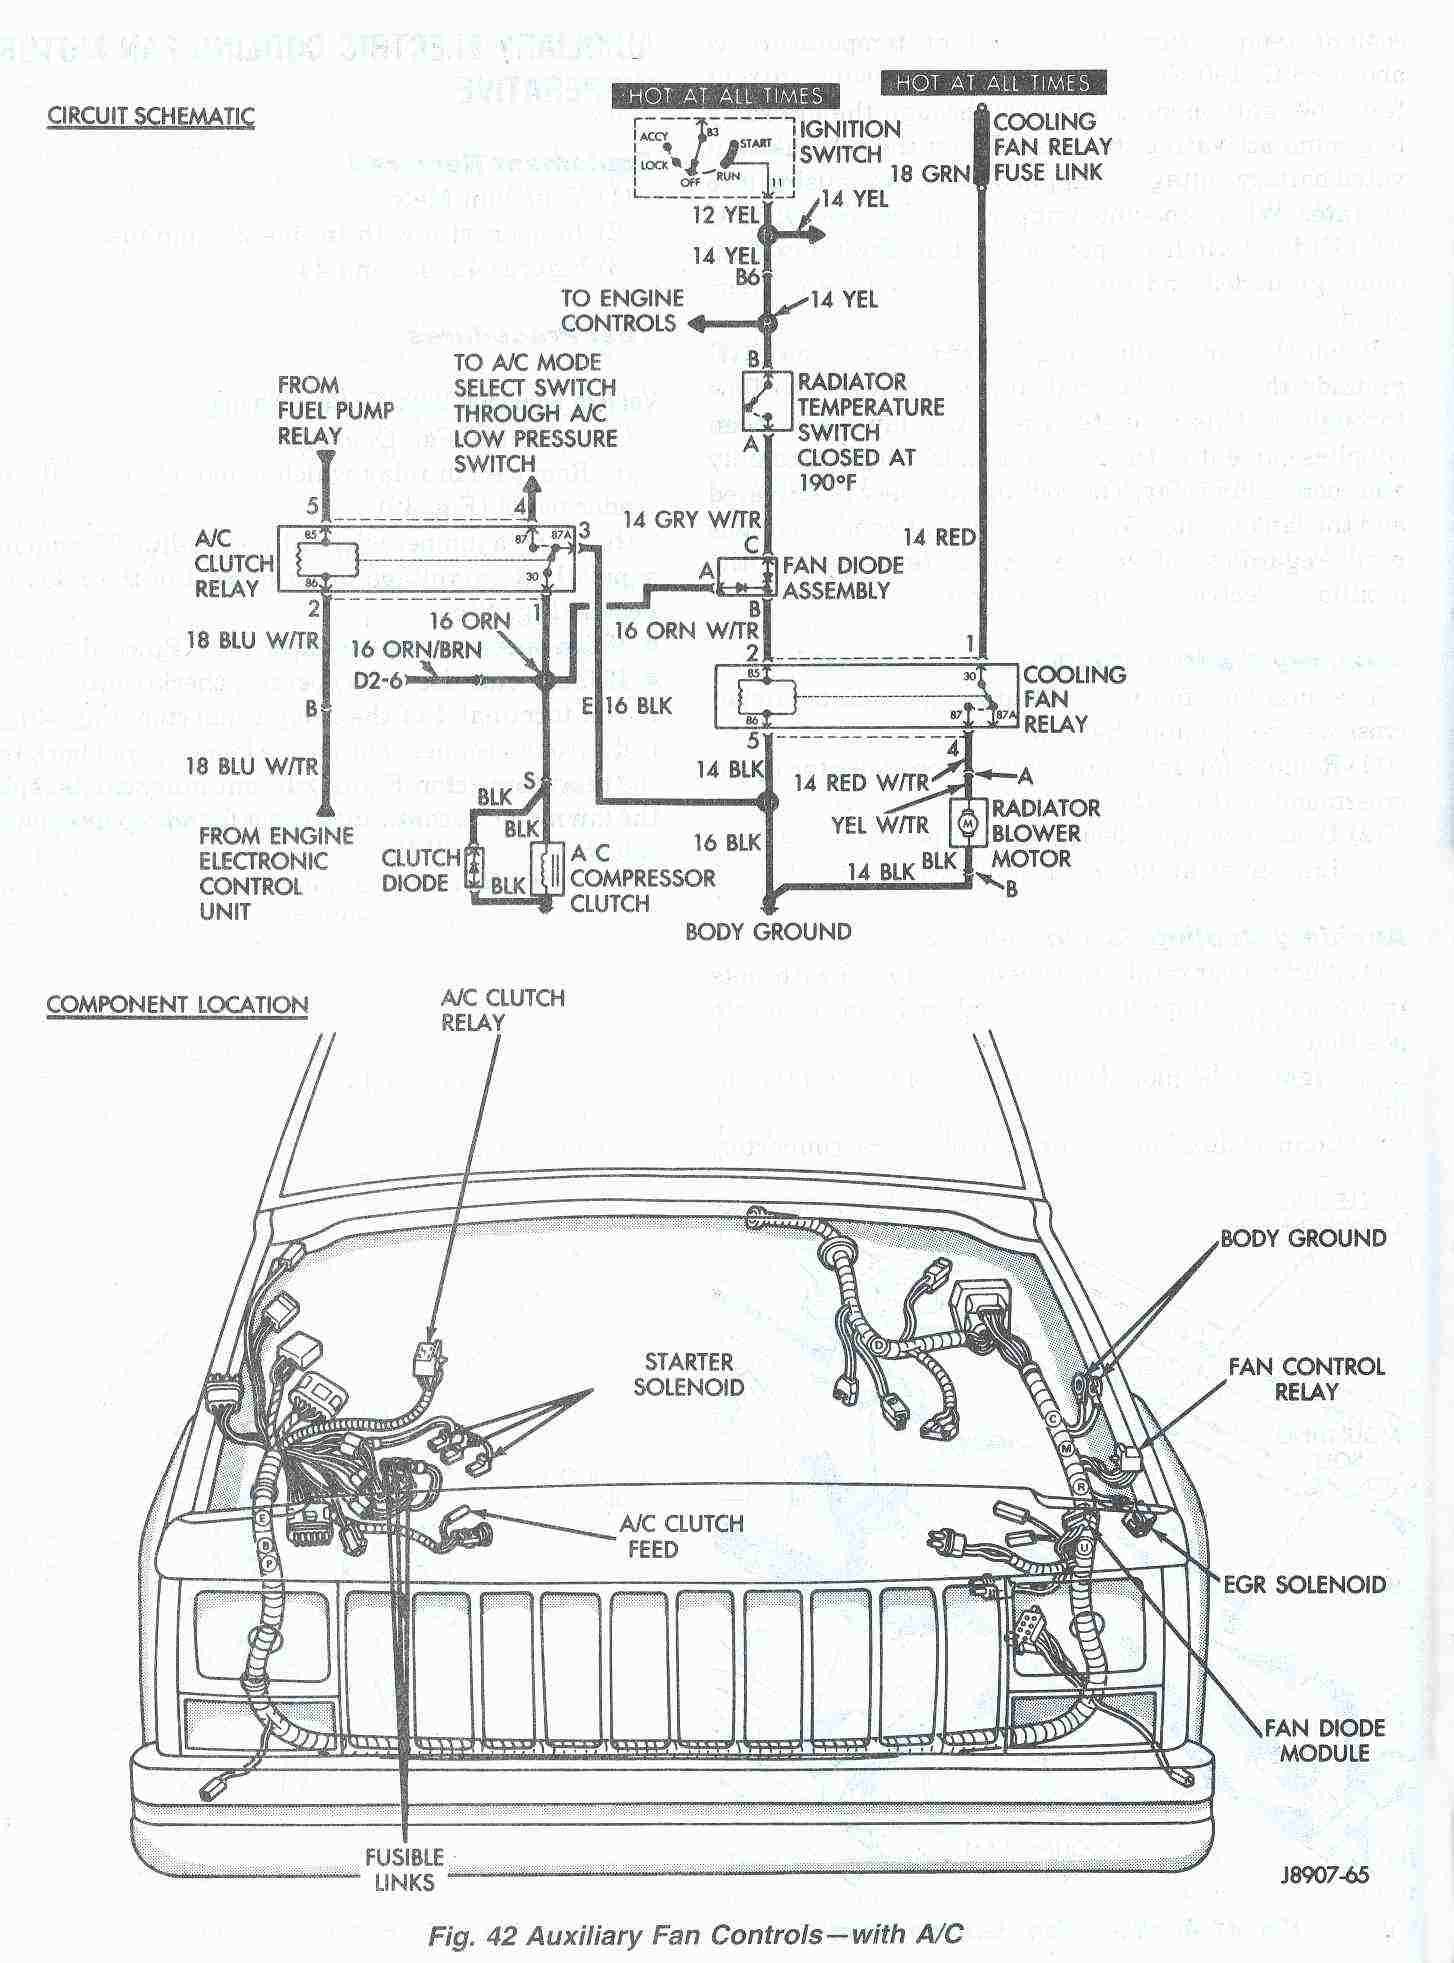 e8c83109bad6c41d377df8c1cb7a8dc4 at the asd relay if vole is not b16 check fuse 20 30 a good there wiring diagram for 1998 jeep cherokee at highcare.asia